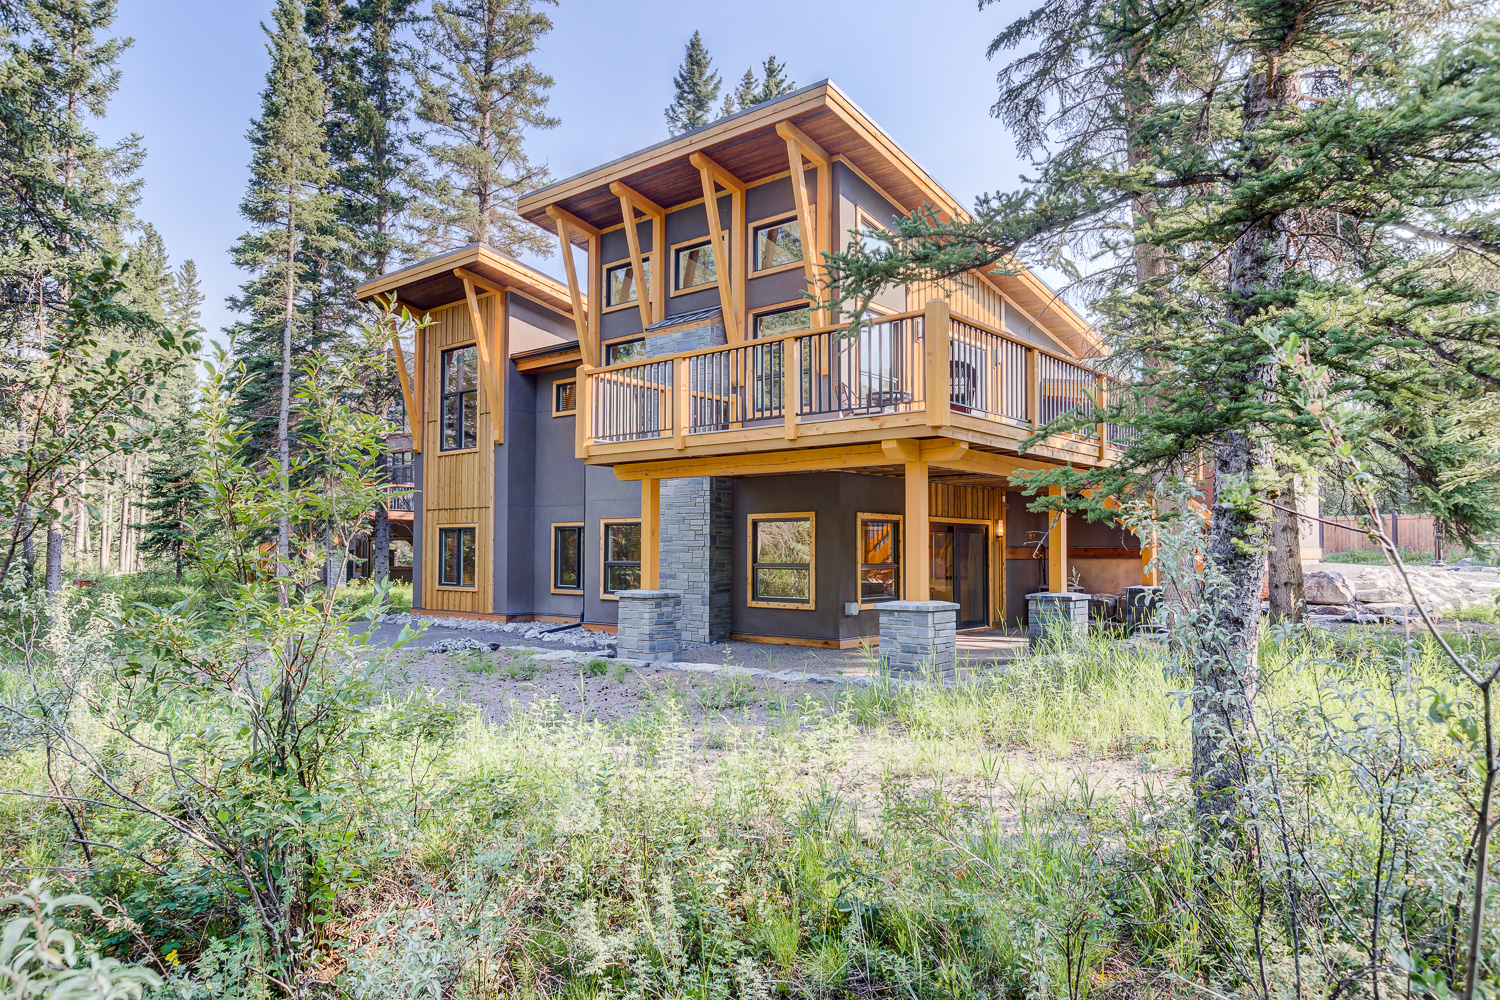 ... In Spring Creek Mountain Village. Offering Single Level Living, With  Ample Outdoor Space, And Room To Entertain Friends And Family This Was A  Rare ...